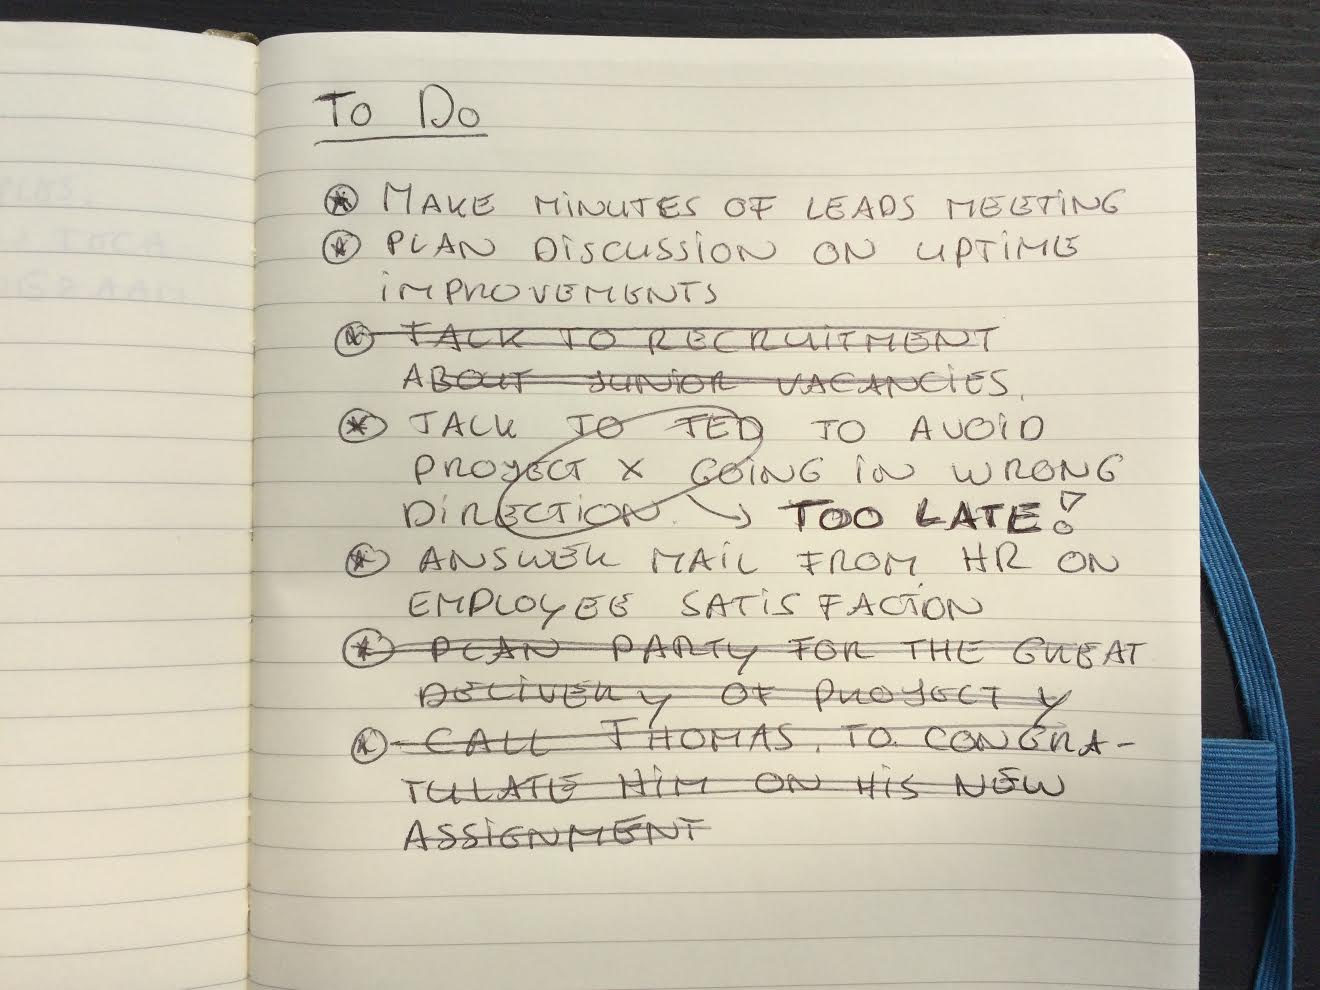 Picture of todo list